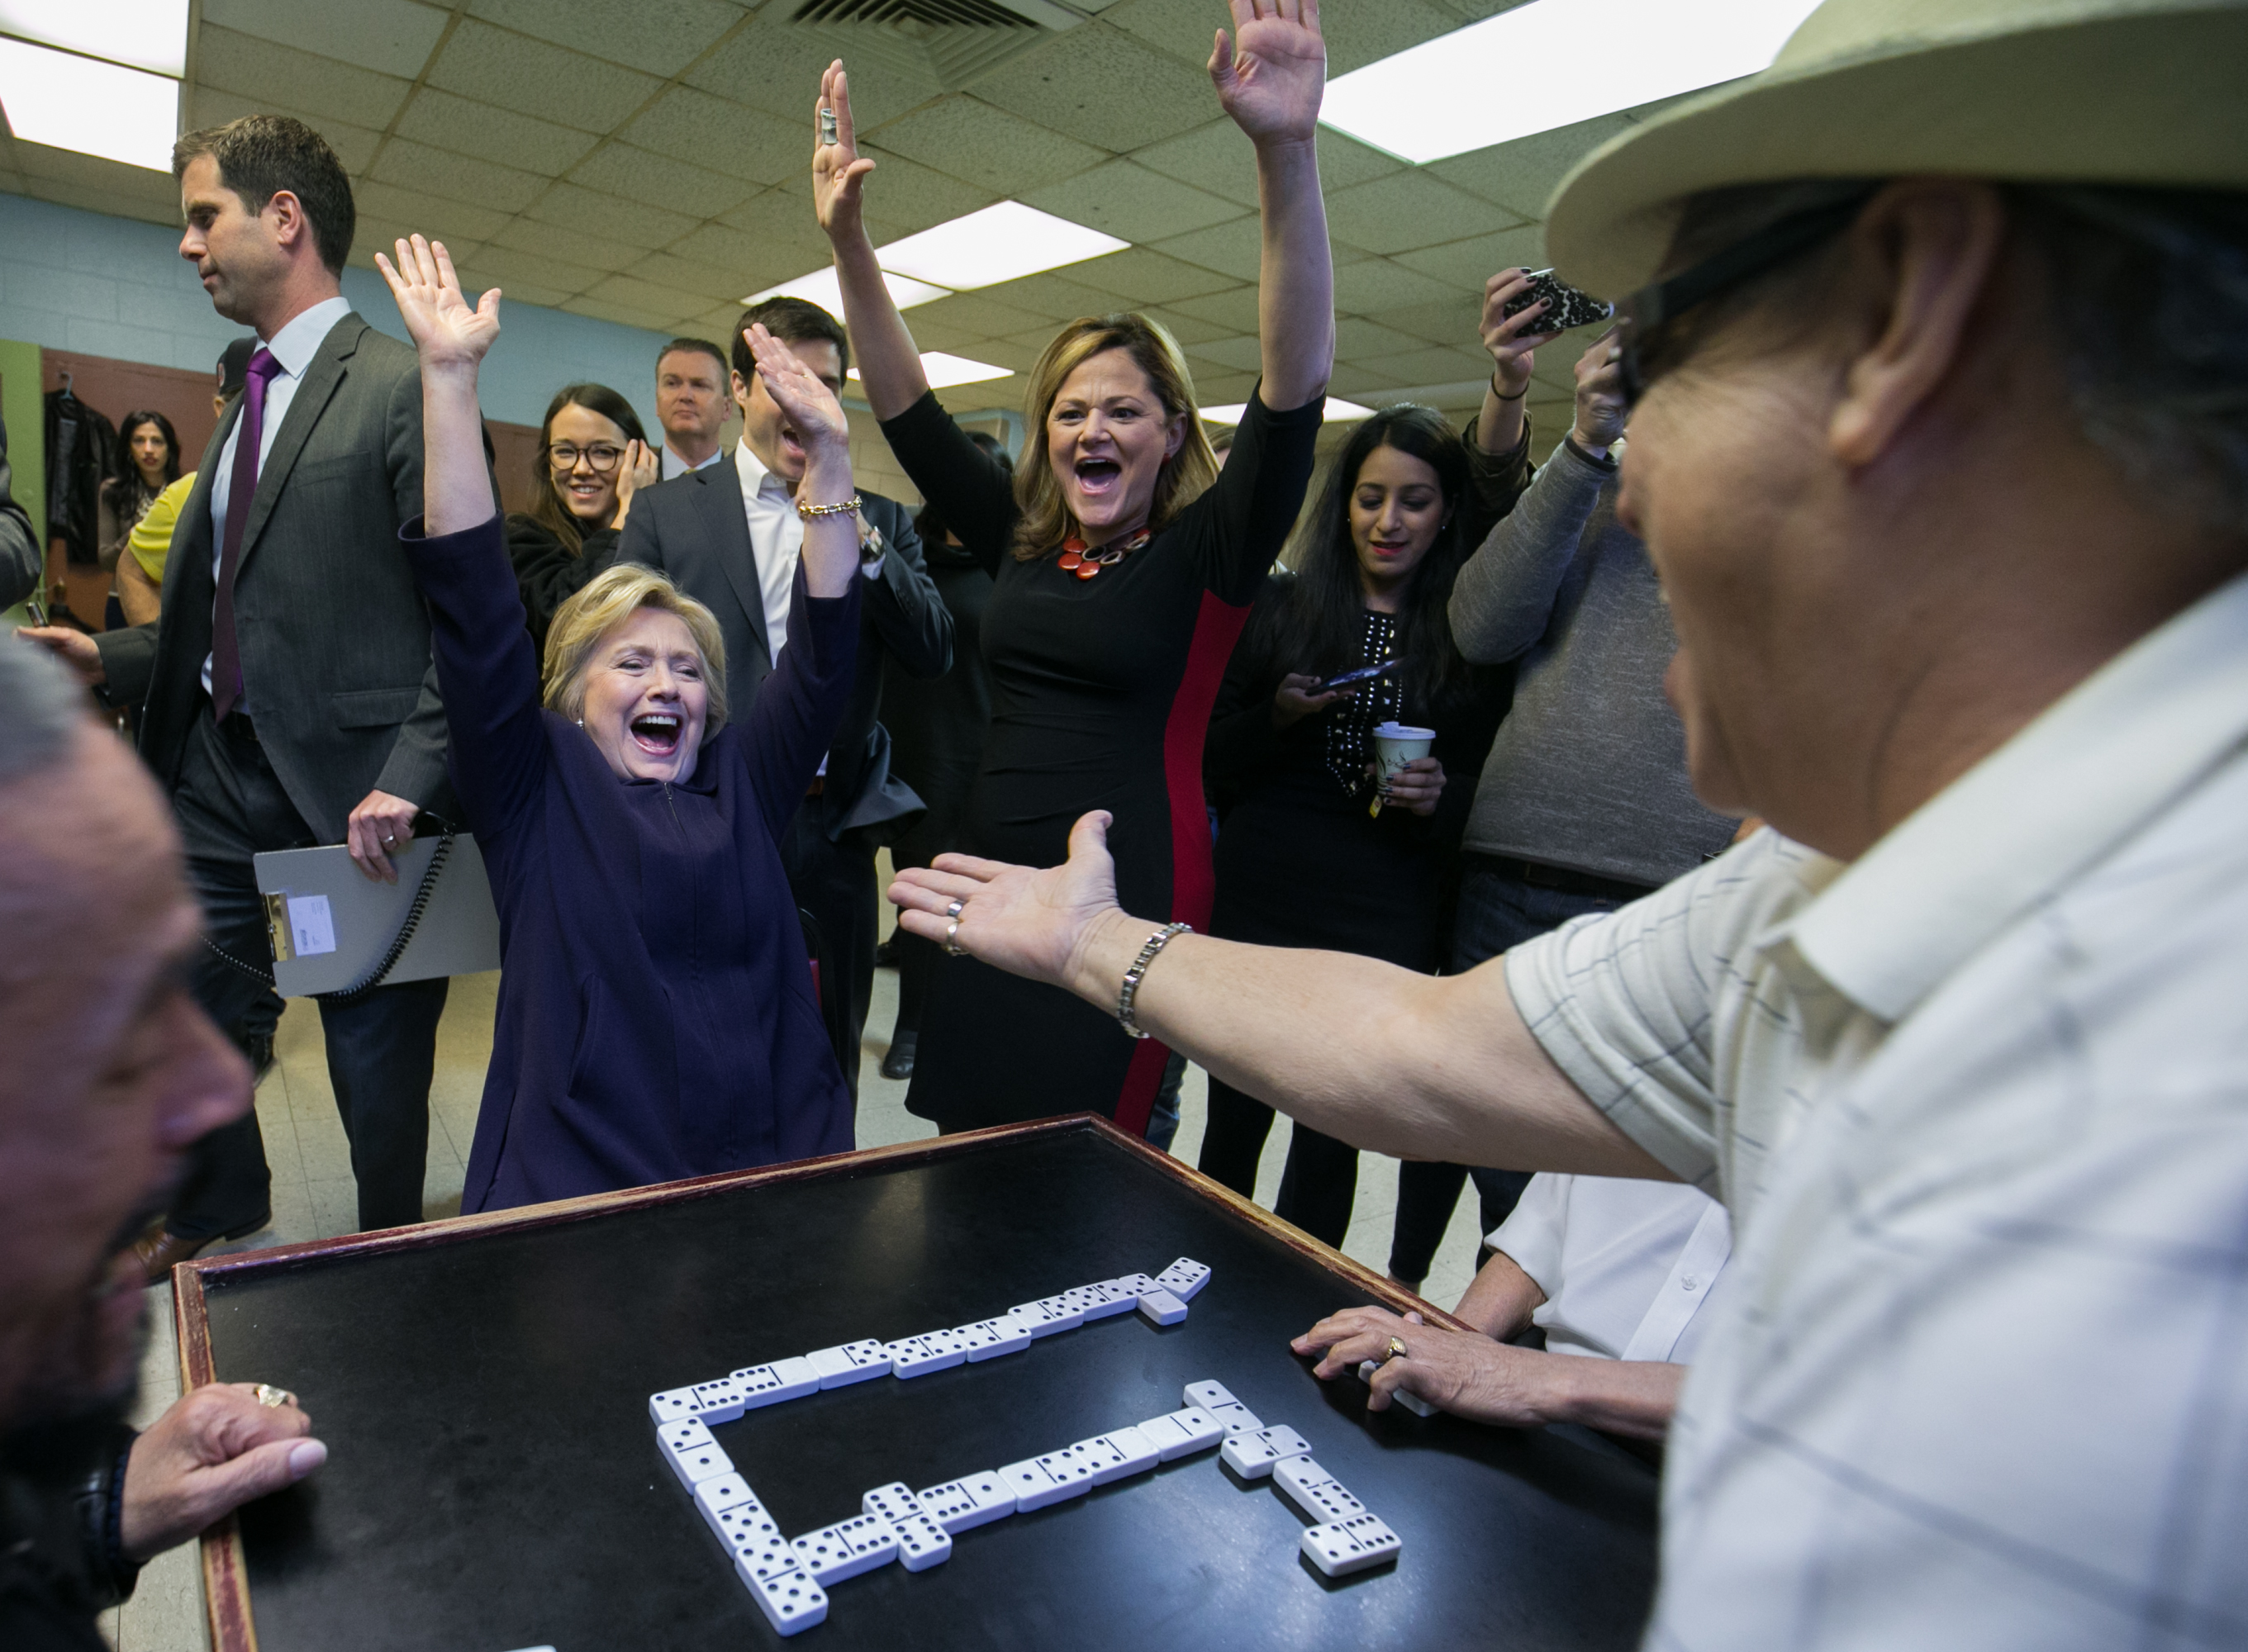 Hillary Clinton and Melissa Mark-Viverito cheer after the candidate wins a game of dominoes in an East Harlem housing project.